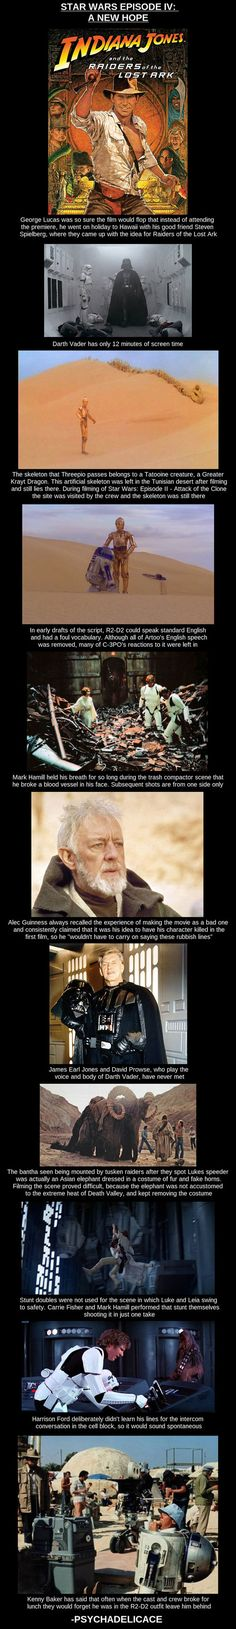 Interesting Star Wars Episode IV: A New Hope Facts [Pic]